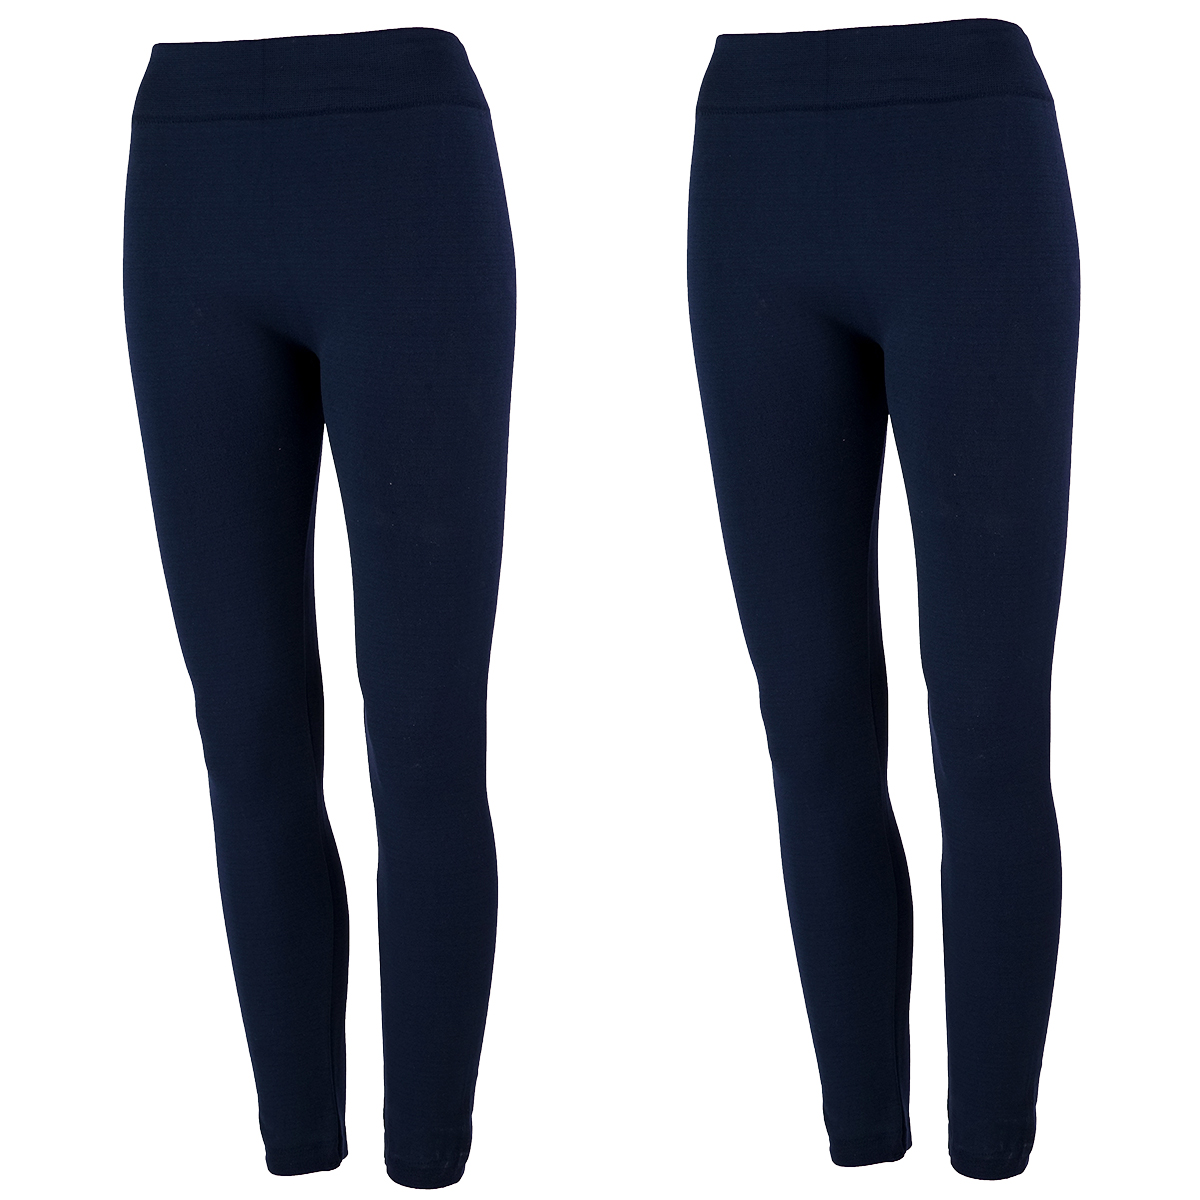 2 Pk True Rock Women's Fleece Lined Leggings